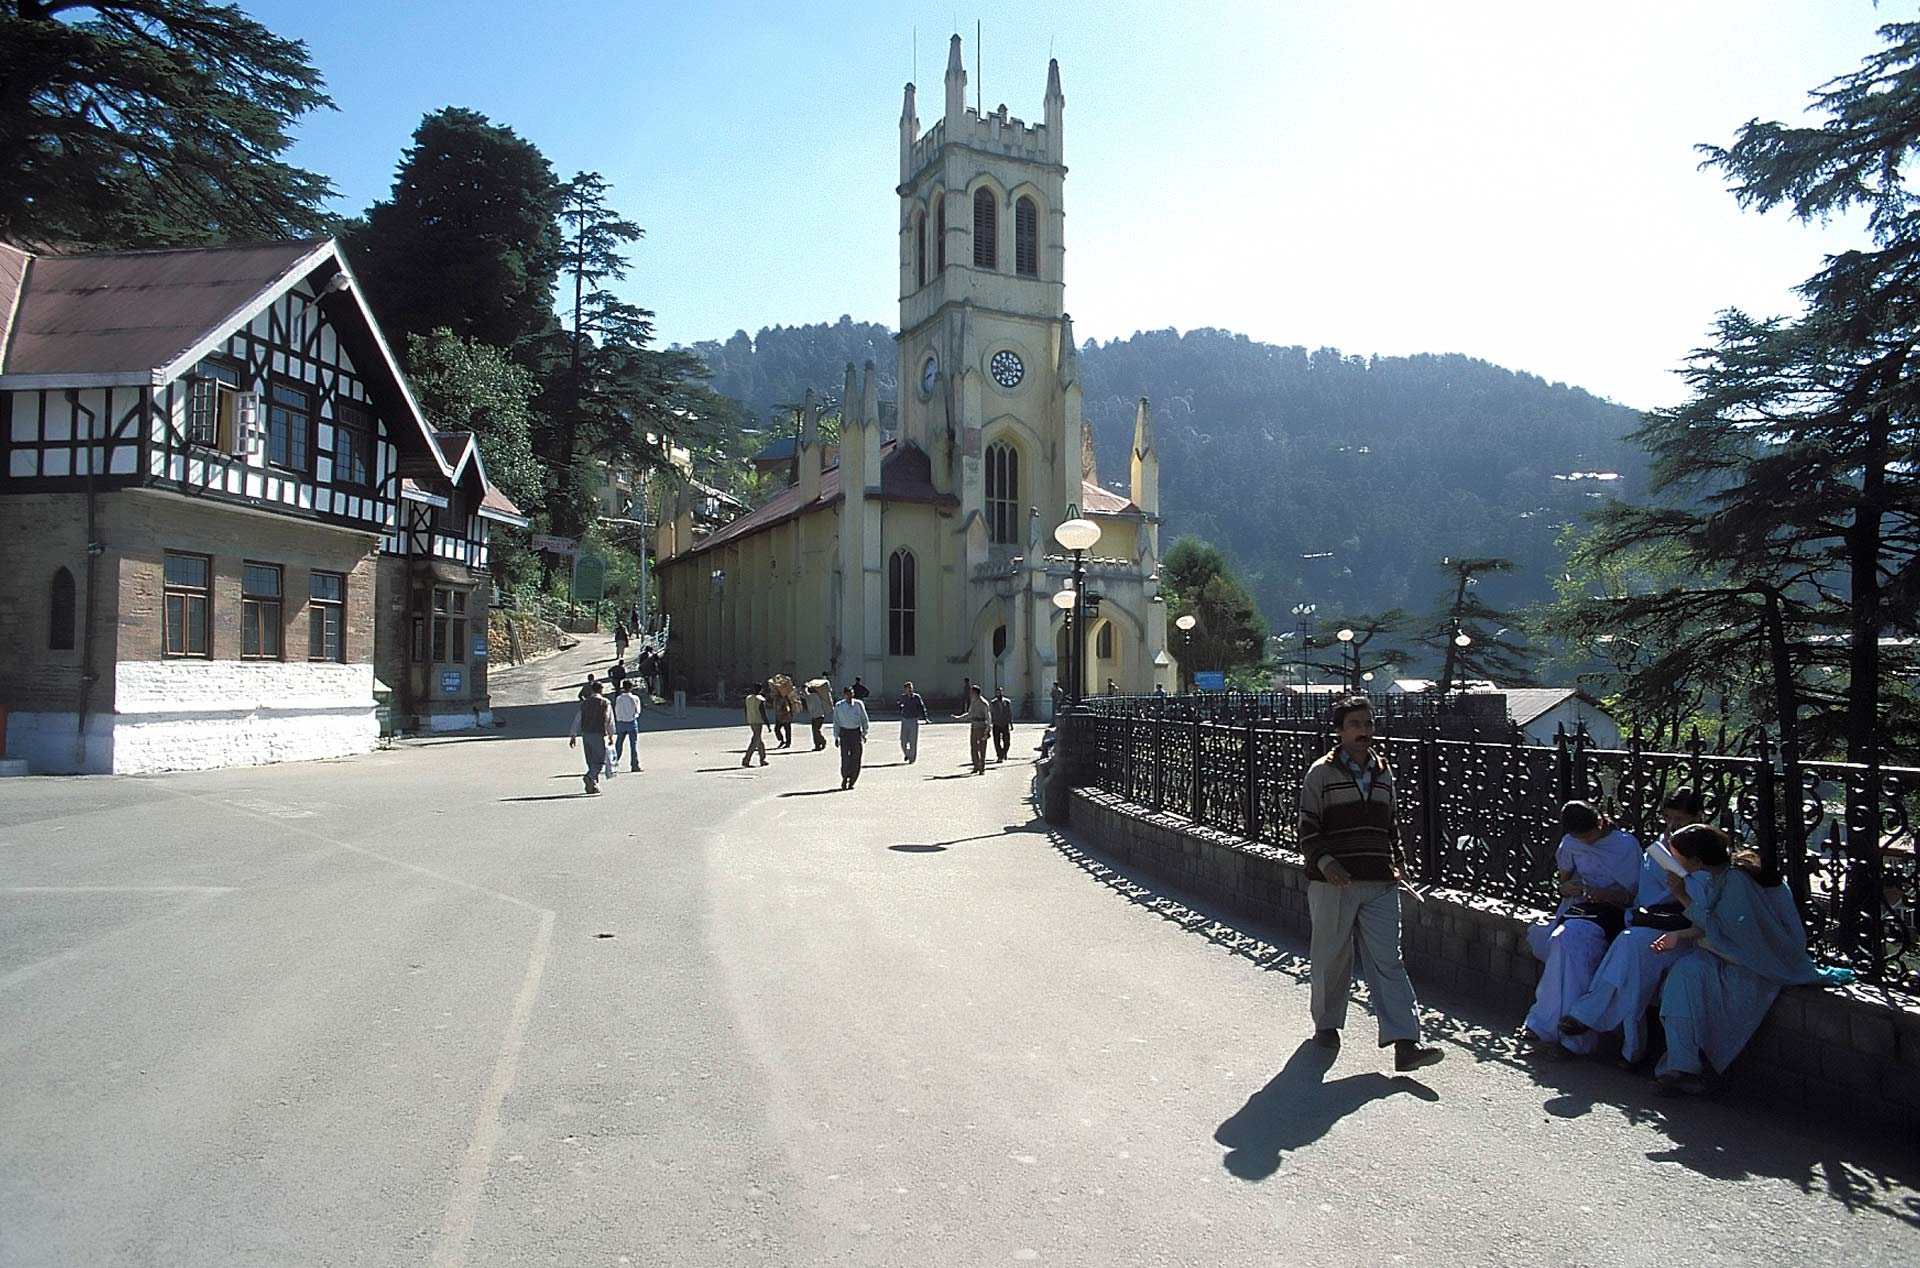 Christ Church on the Ridge, Shimla, Himachal Pradesh, India